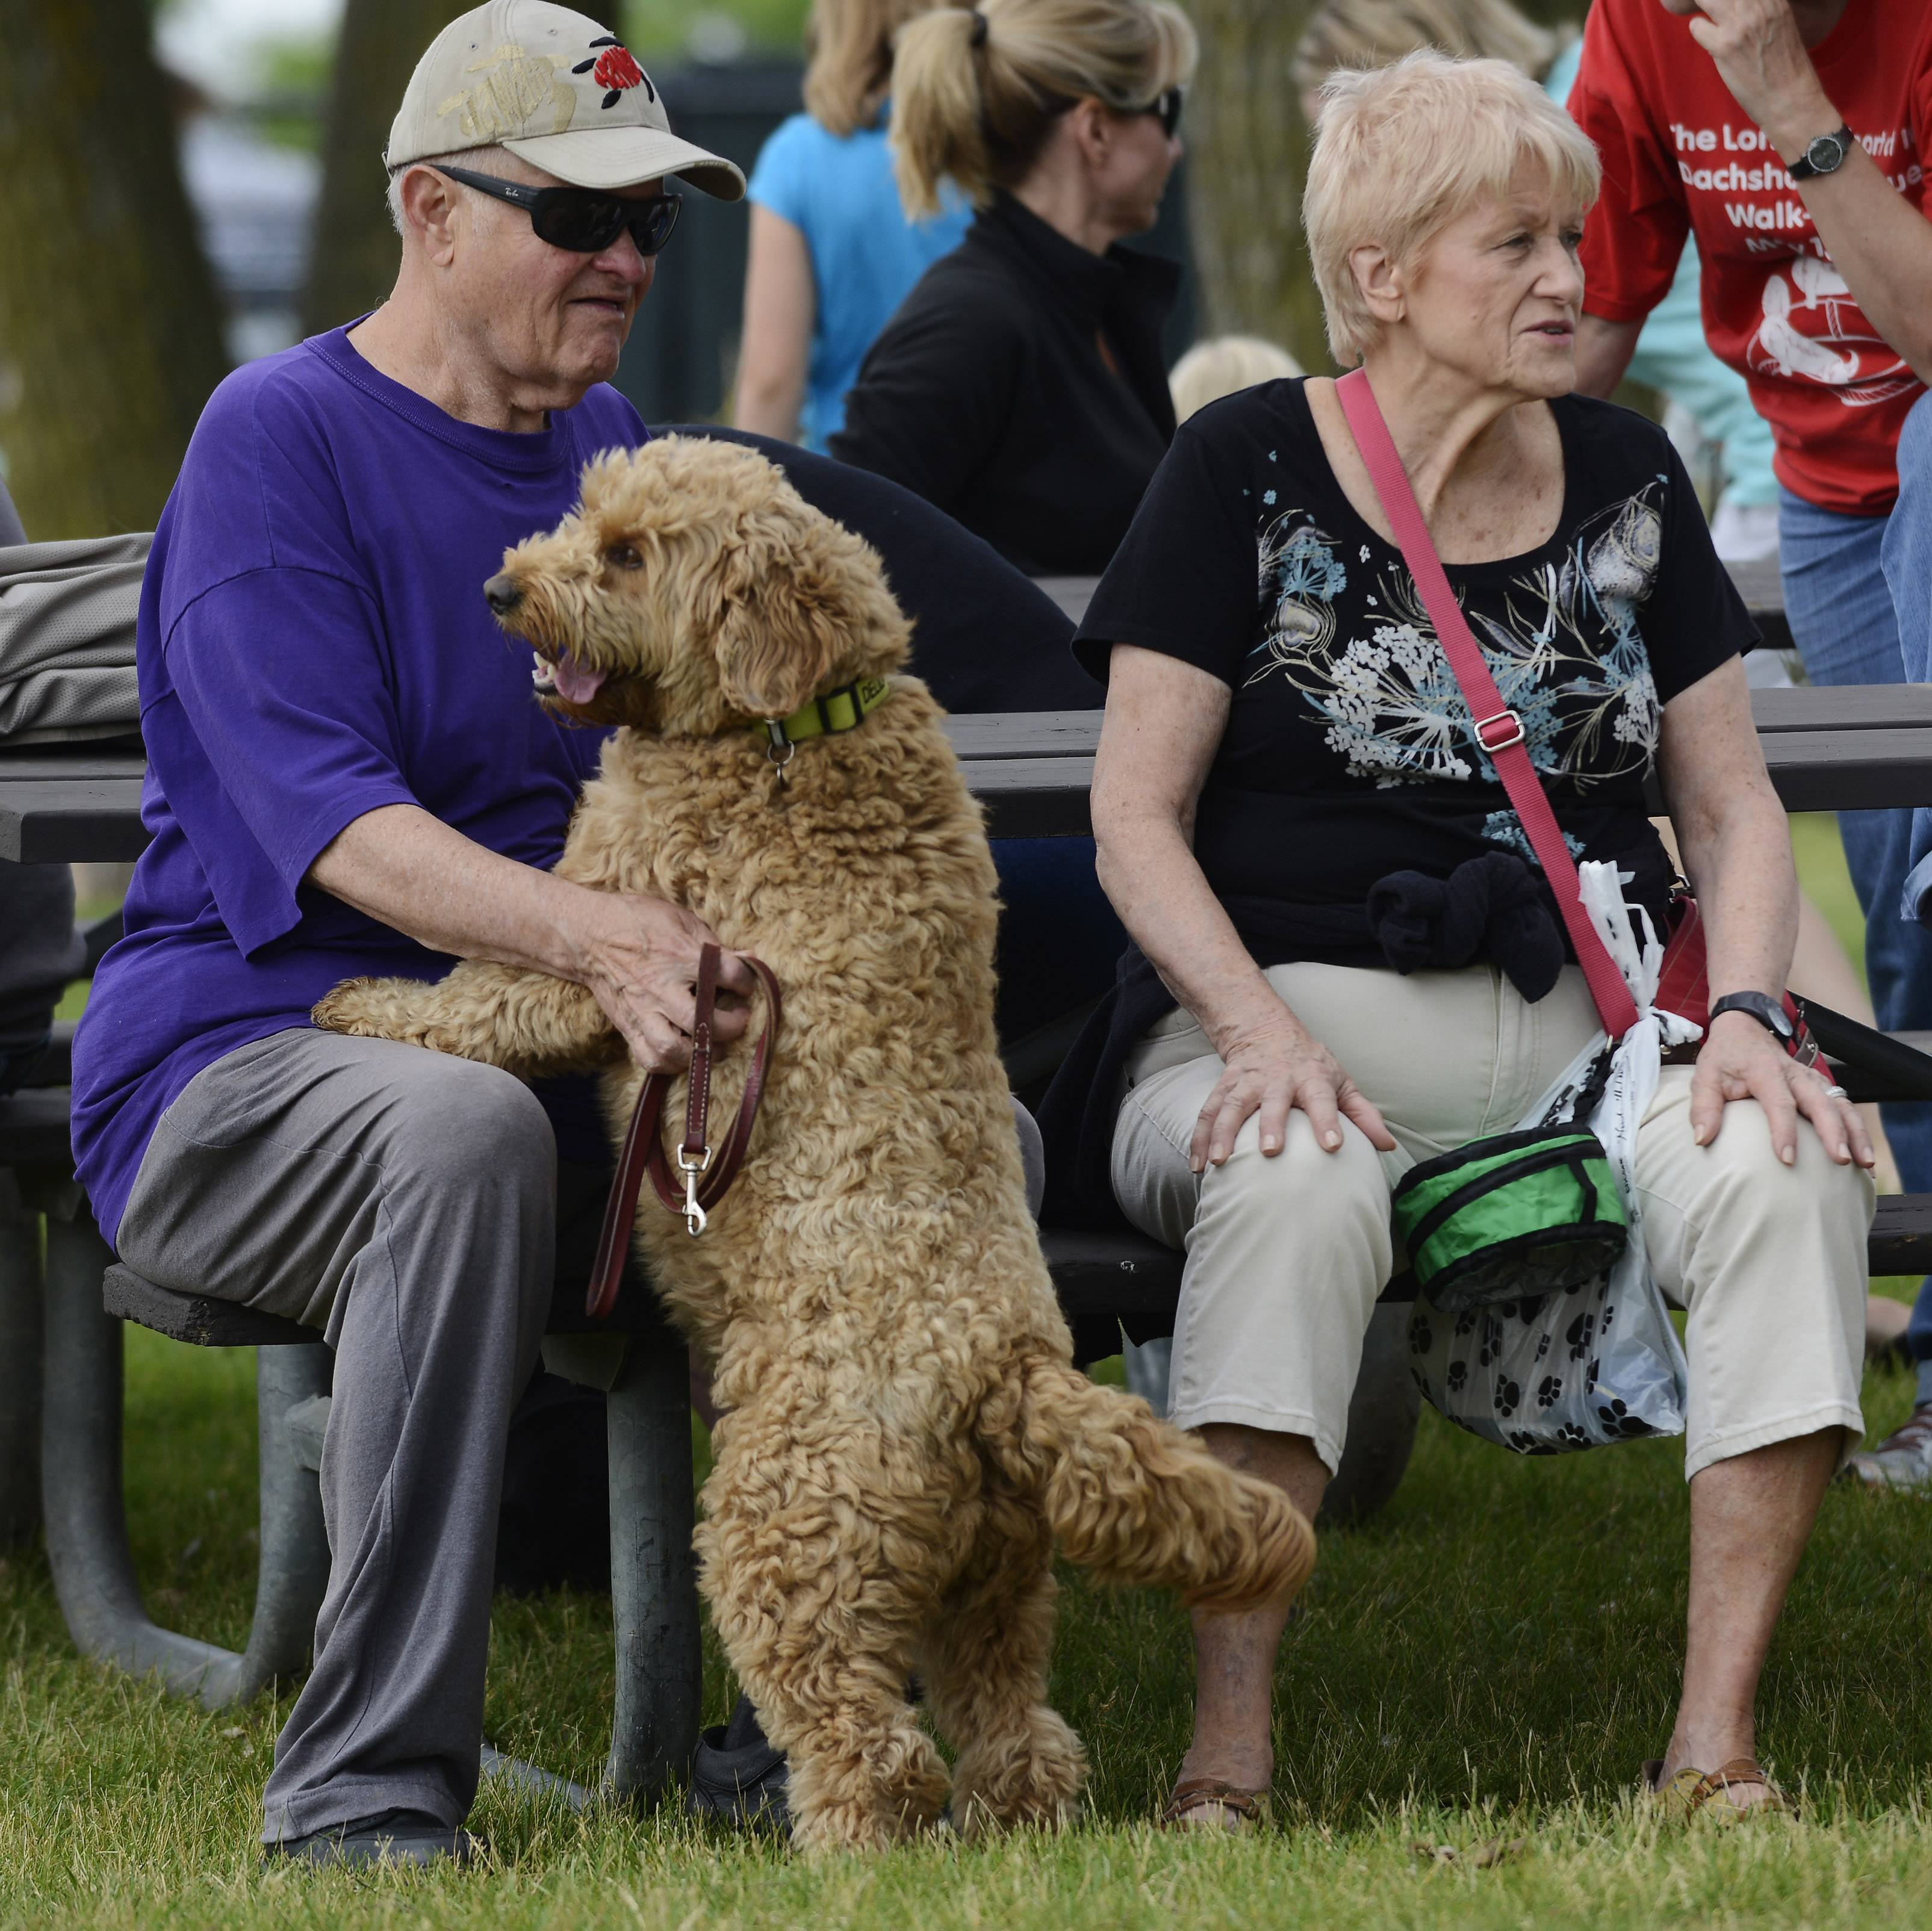 Bob and Pat Waldron of Arlington Heights and their dog, Delilah, a golden doodle, visit the Canine Commons dog park at Melas Park in Mount Prospect, which is a joint effort of the Arlington Heights and Mount Prospect park districts.